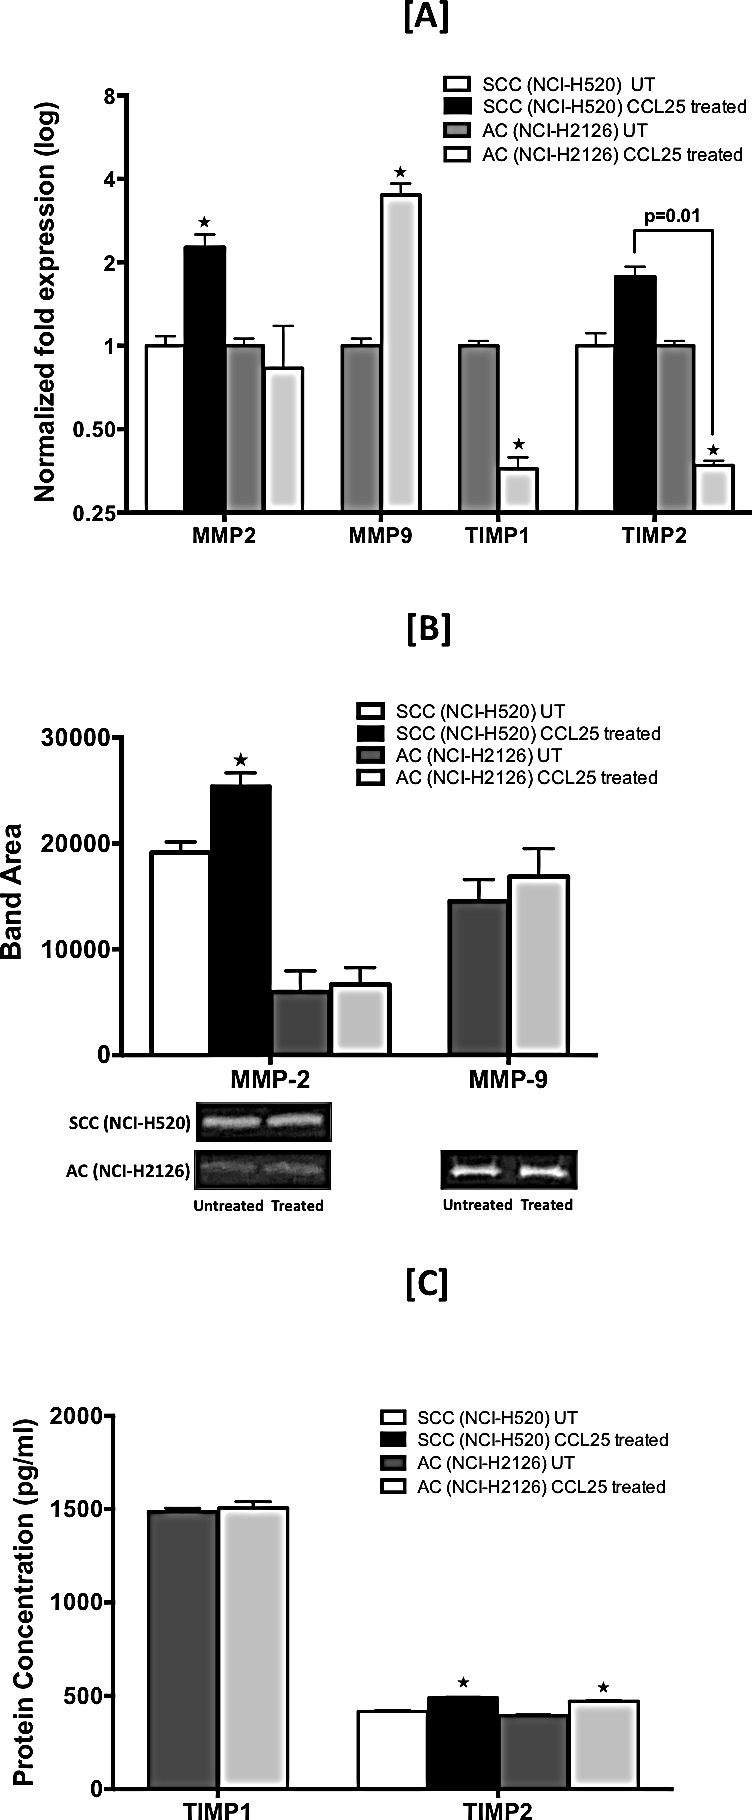 CCL25-induced expression of MMPs and TIMPs in LuCa cells Cells were tested for their capacity to express mRNA and protein for MMP-2 and -9 and TIMP-1 and -2. [A] SCC (NCI-H520) and AC (NCI-H2126) cells were treated for 30 min with 0 or 100 ng/mL of CCL25. Total RNA was isolated, and quantitative real time-PCR analysis was performed for mRNA expression of MMP-2 and -9 and TIMP-1 and -2. Transcript copies were presented relative to copies of 18S rRNA. [B] Active gelatinases (MMP-2 and -9) in culture supernatants were quantified by gelatin zymography. Cells were stimulated with CCL25 (0 or 100 ng/ml) for 24 h. Top: Graph represents densitometric analysis of zymography for control and treated samples, presented as band area, analyzed by ImageJ software. Bottom: Representative zymography. [C] TIMP-1 and TIMP-2 in culture supernatants were quantified by ELISA. Bars represent the concentration (pg/ml) of TIMP-1 and TIMP-2 in culture supernatants collected from cells treated with 0 or 100 ng/ml of CCL25 for 24 h. Asterisks show significant differences between untreated and CCL25-treated LuCa cells. Data was analyzed by non-parametric two tailed t-test and presented as mean +/− S.D., n=2. * p